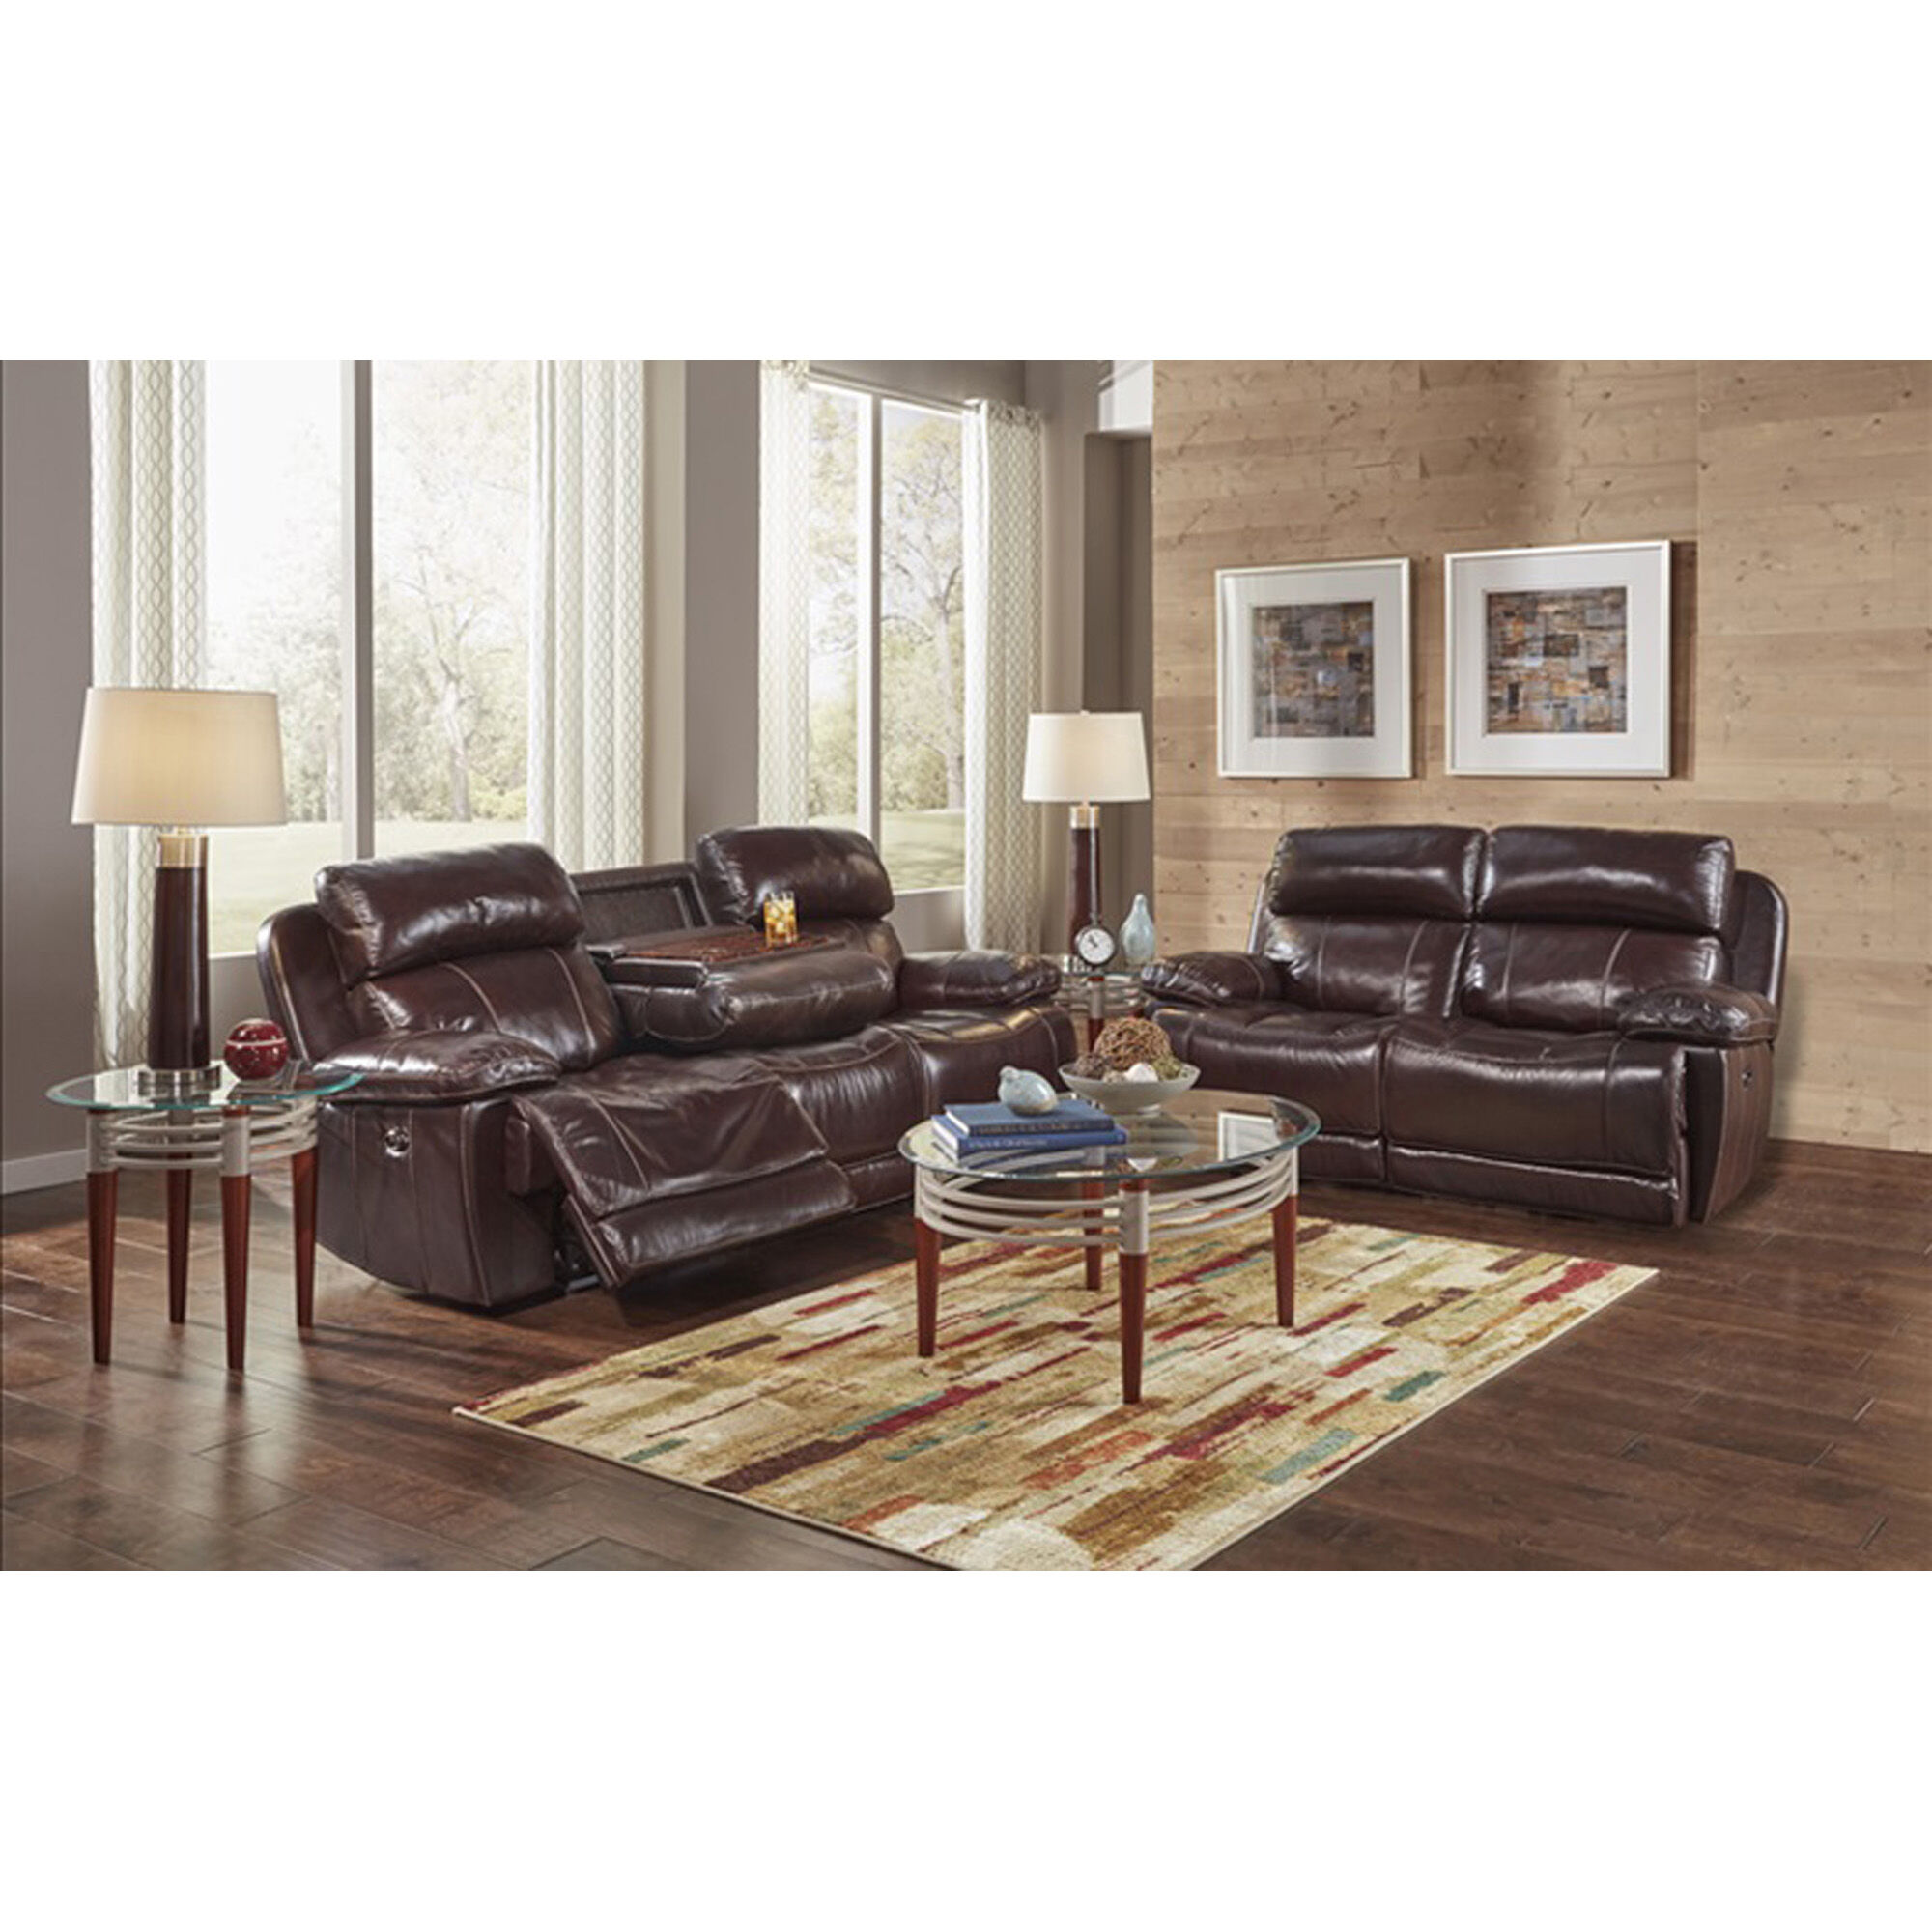 7 Piece James Reclining Living Room Collection